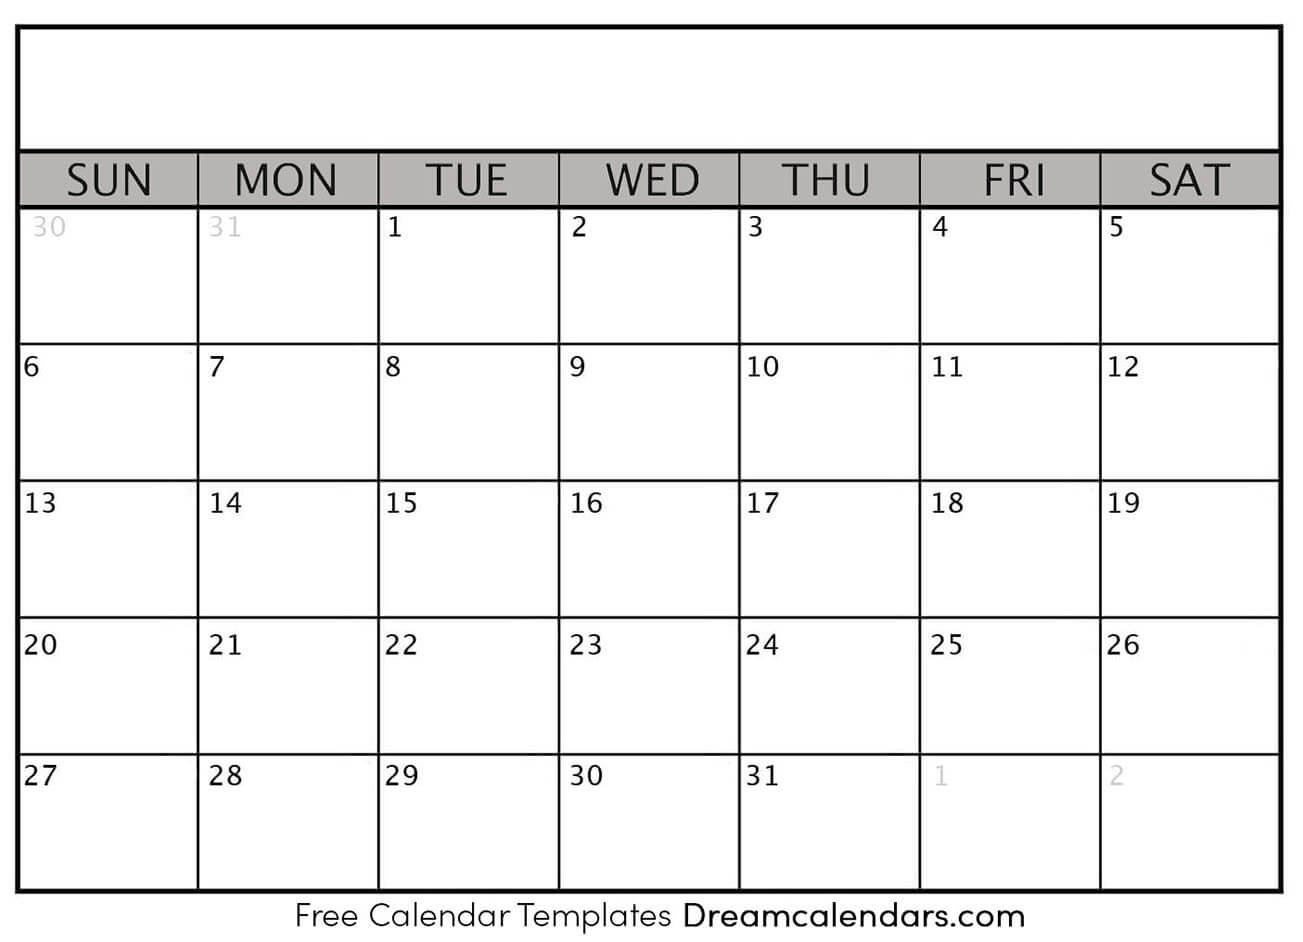 Dream Calendars – Make Your Calendar Template Blog Printable Blank Numbered List Up To 31